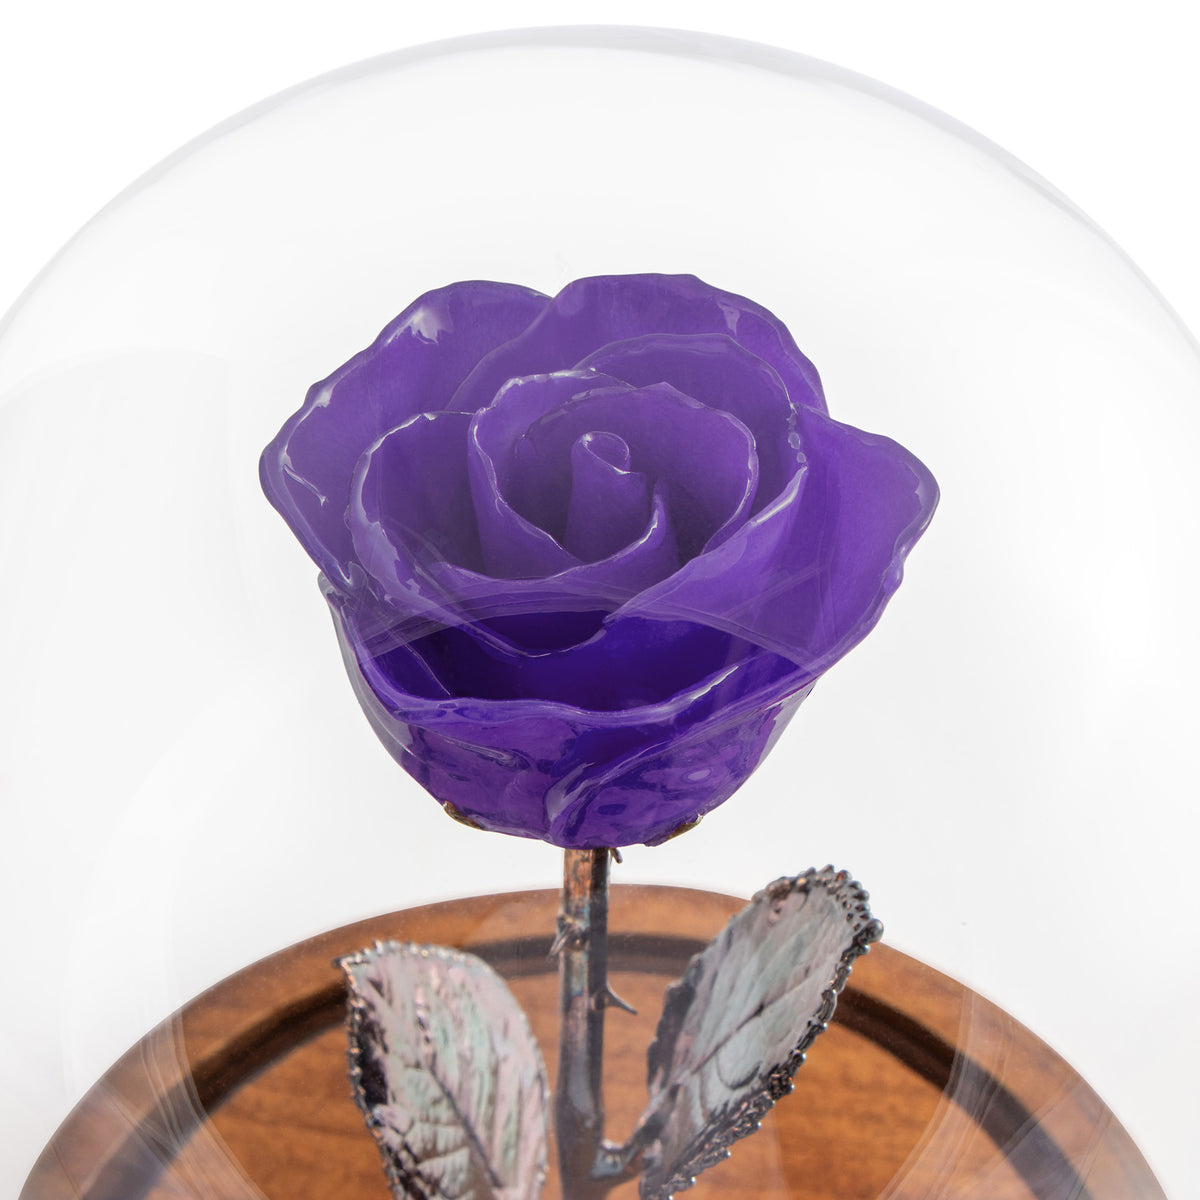 Purple Enchanted Rose (aka Beauty & The Beast Rose) with Patina Copper Stem Mounted to A Hand Turned Solid Wood Base under a glass dome. Zoomed in view of flower.